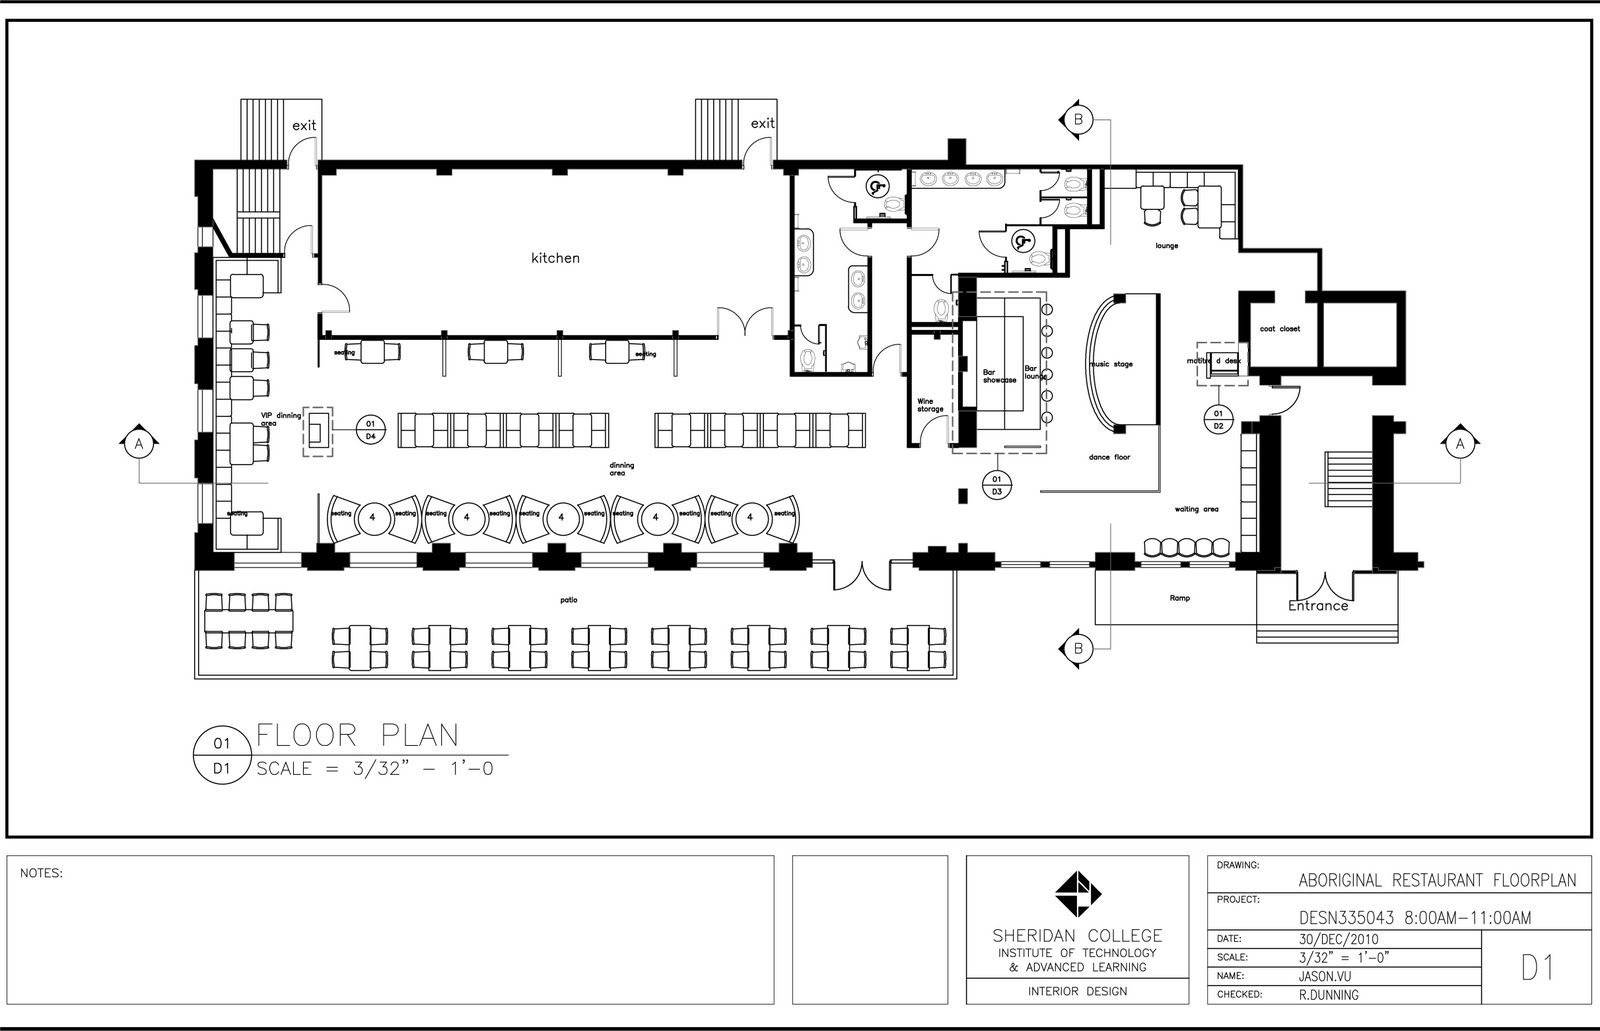 Restaurant Floor Plan Bar Psd: Restaurant Floor Plans Opera House And The Great Outdoors